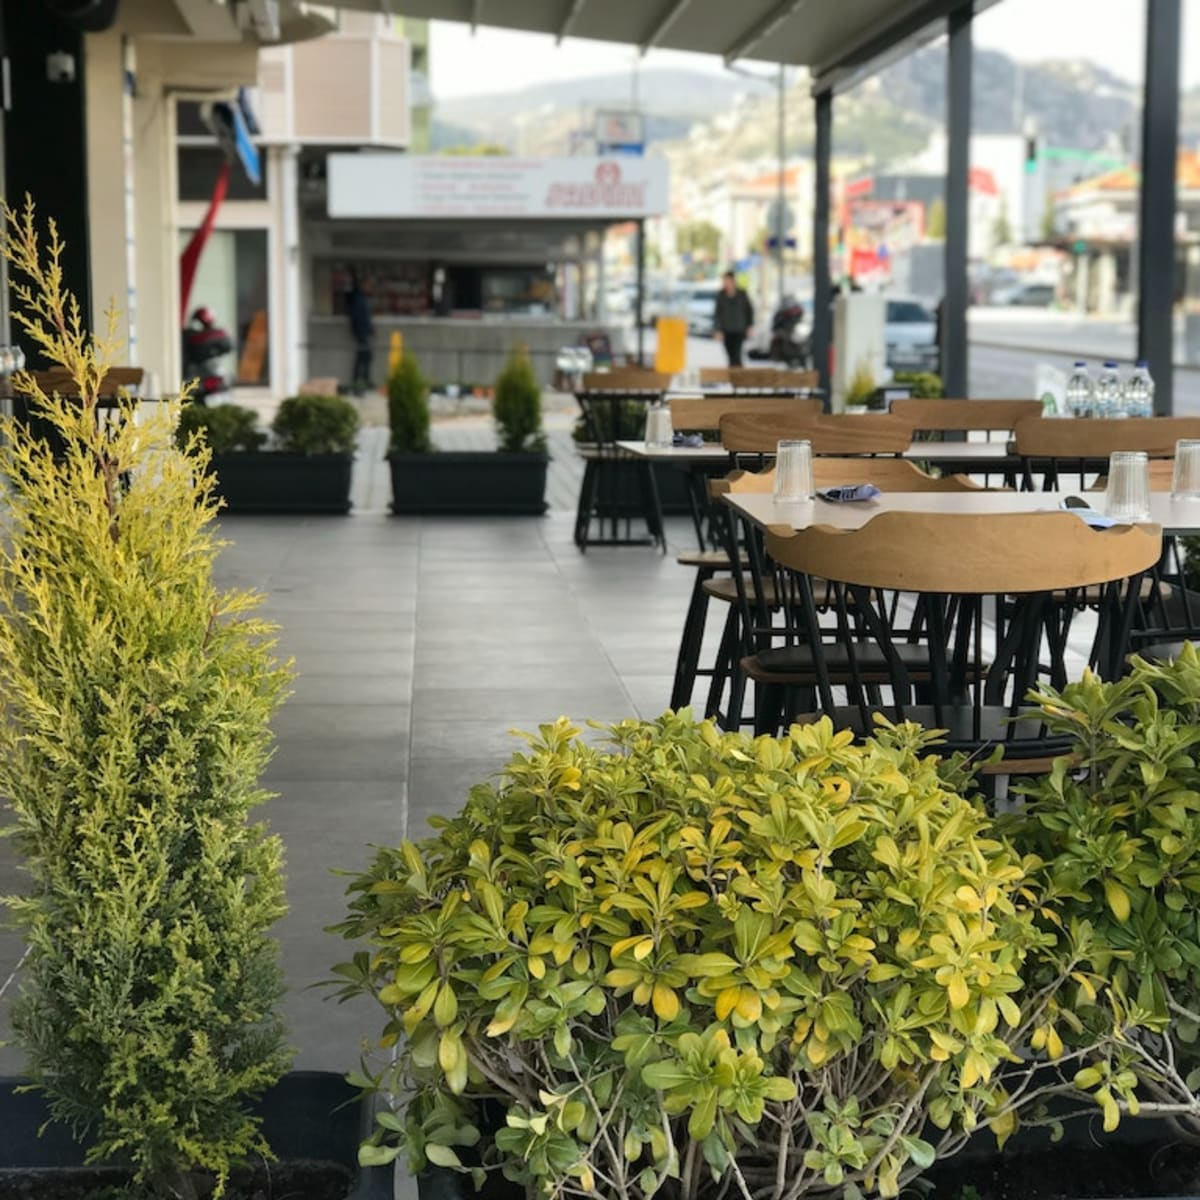 Gov Walz To Reopen Outdoor Seating, What Restaurants Are Doing Outdoor Seating